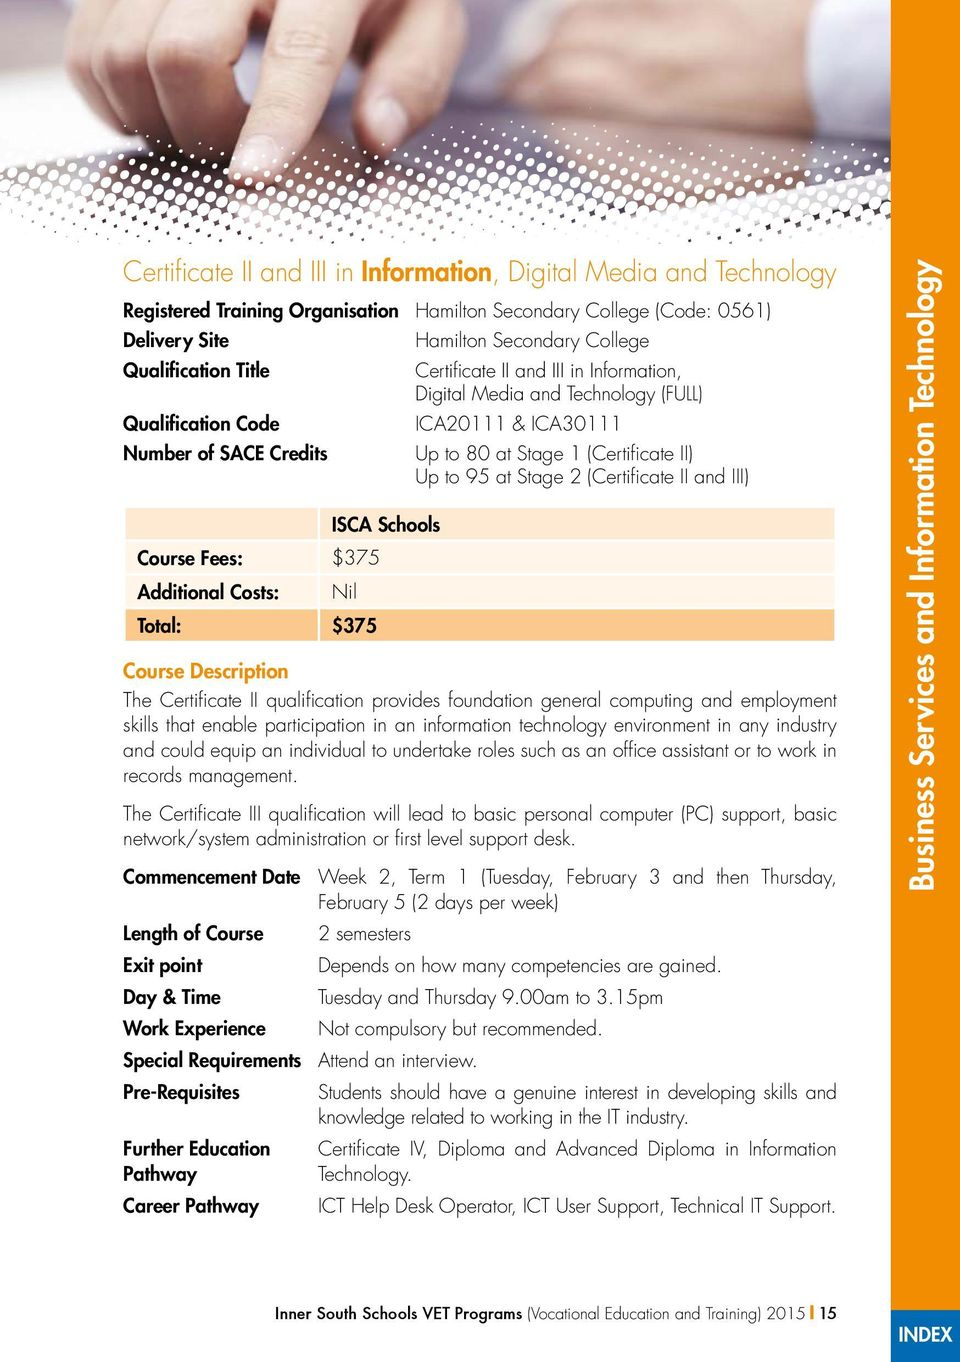 (Certificate II and III) The Certificate II qualification provides foundation general computing and employment skills that enable participation in an information technology environment in any